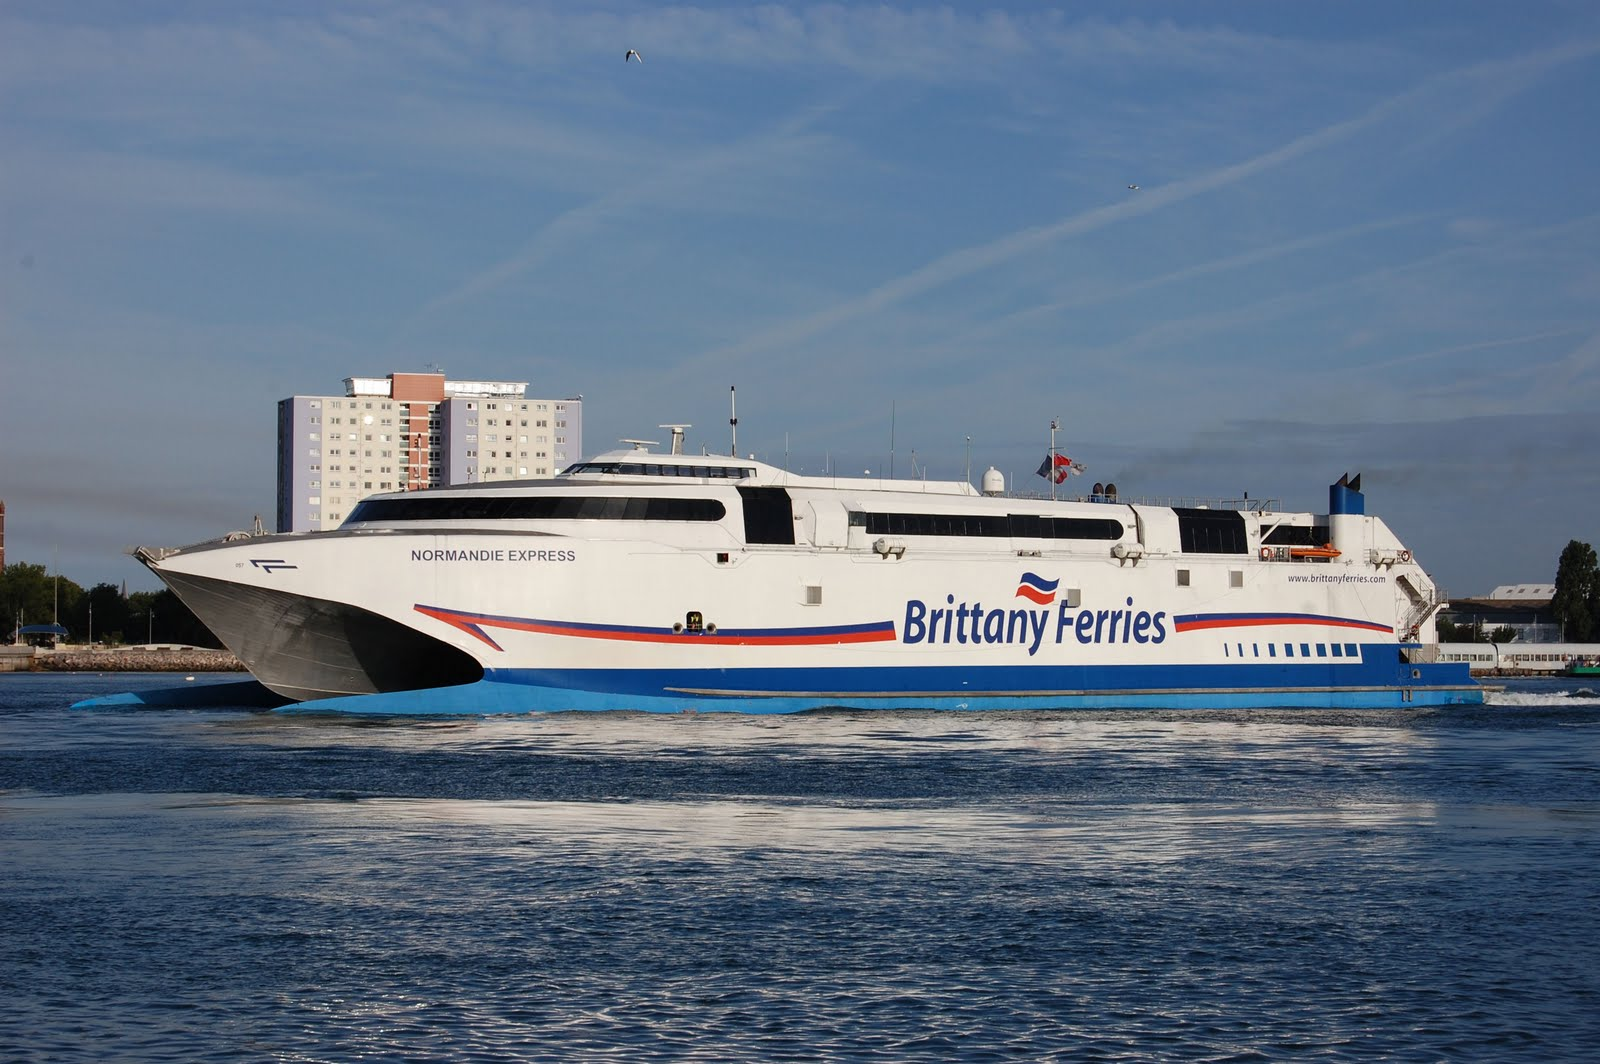 brittany ferries normandie express leaving portsmouth. Black Bedroom Furniture Sets. Home Design Ideas